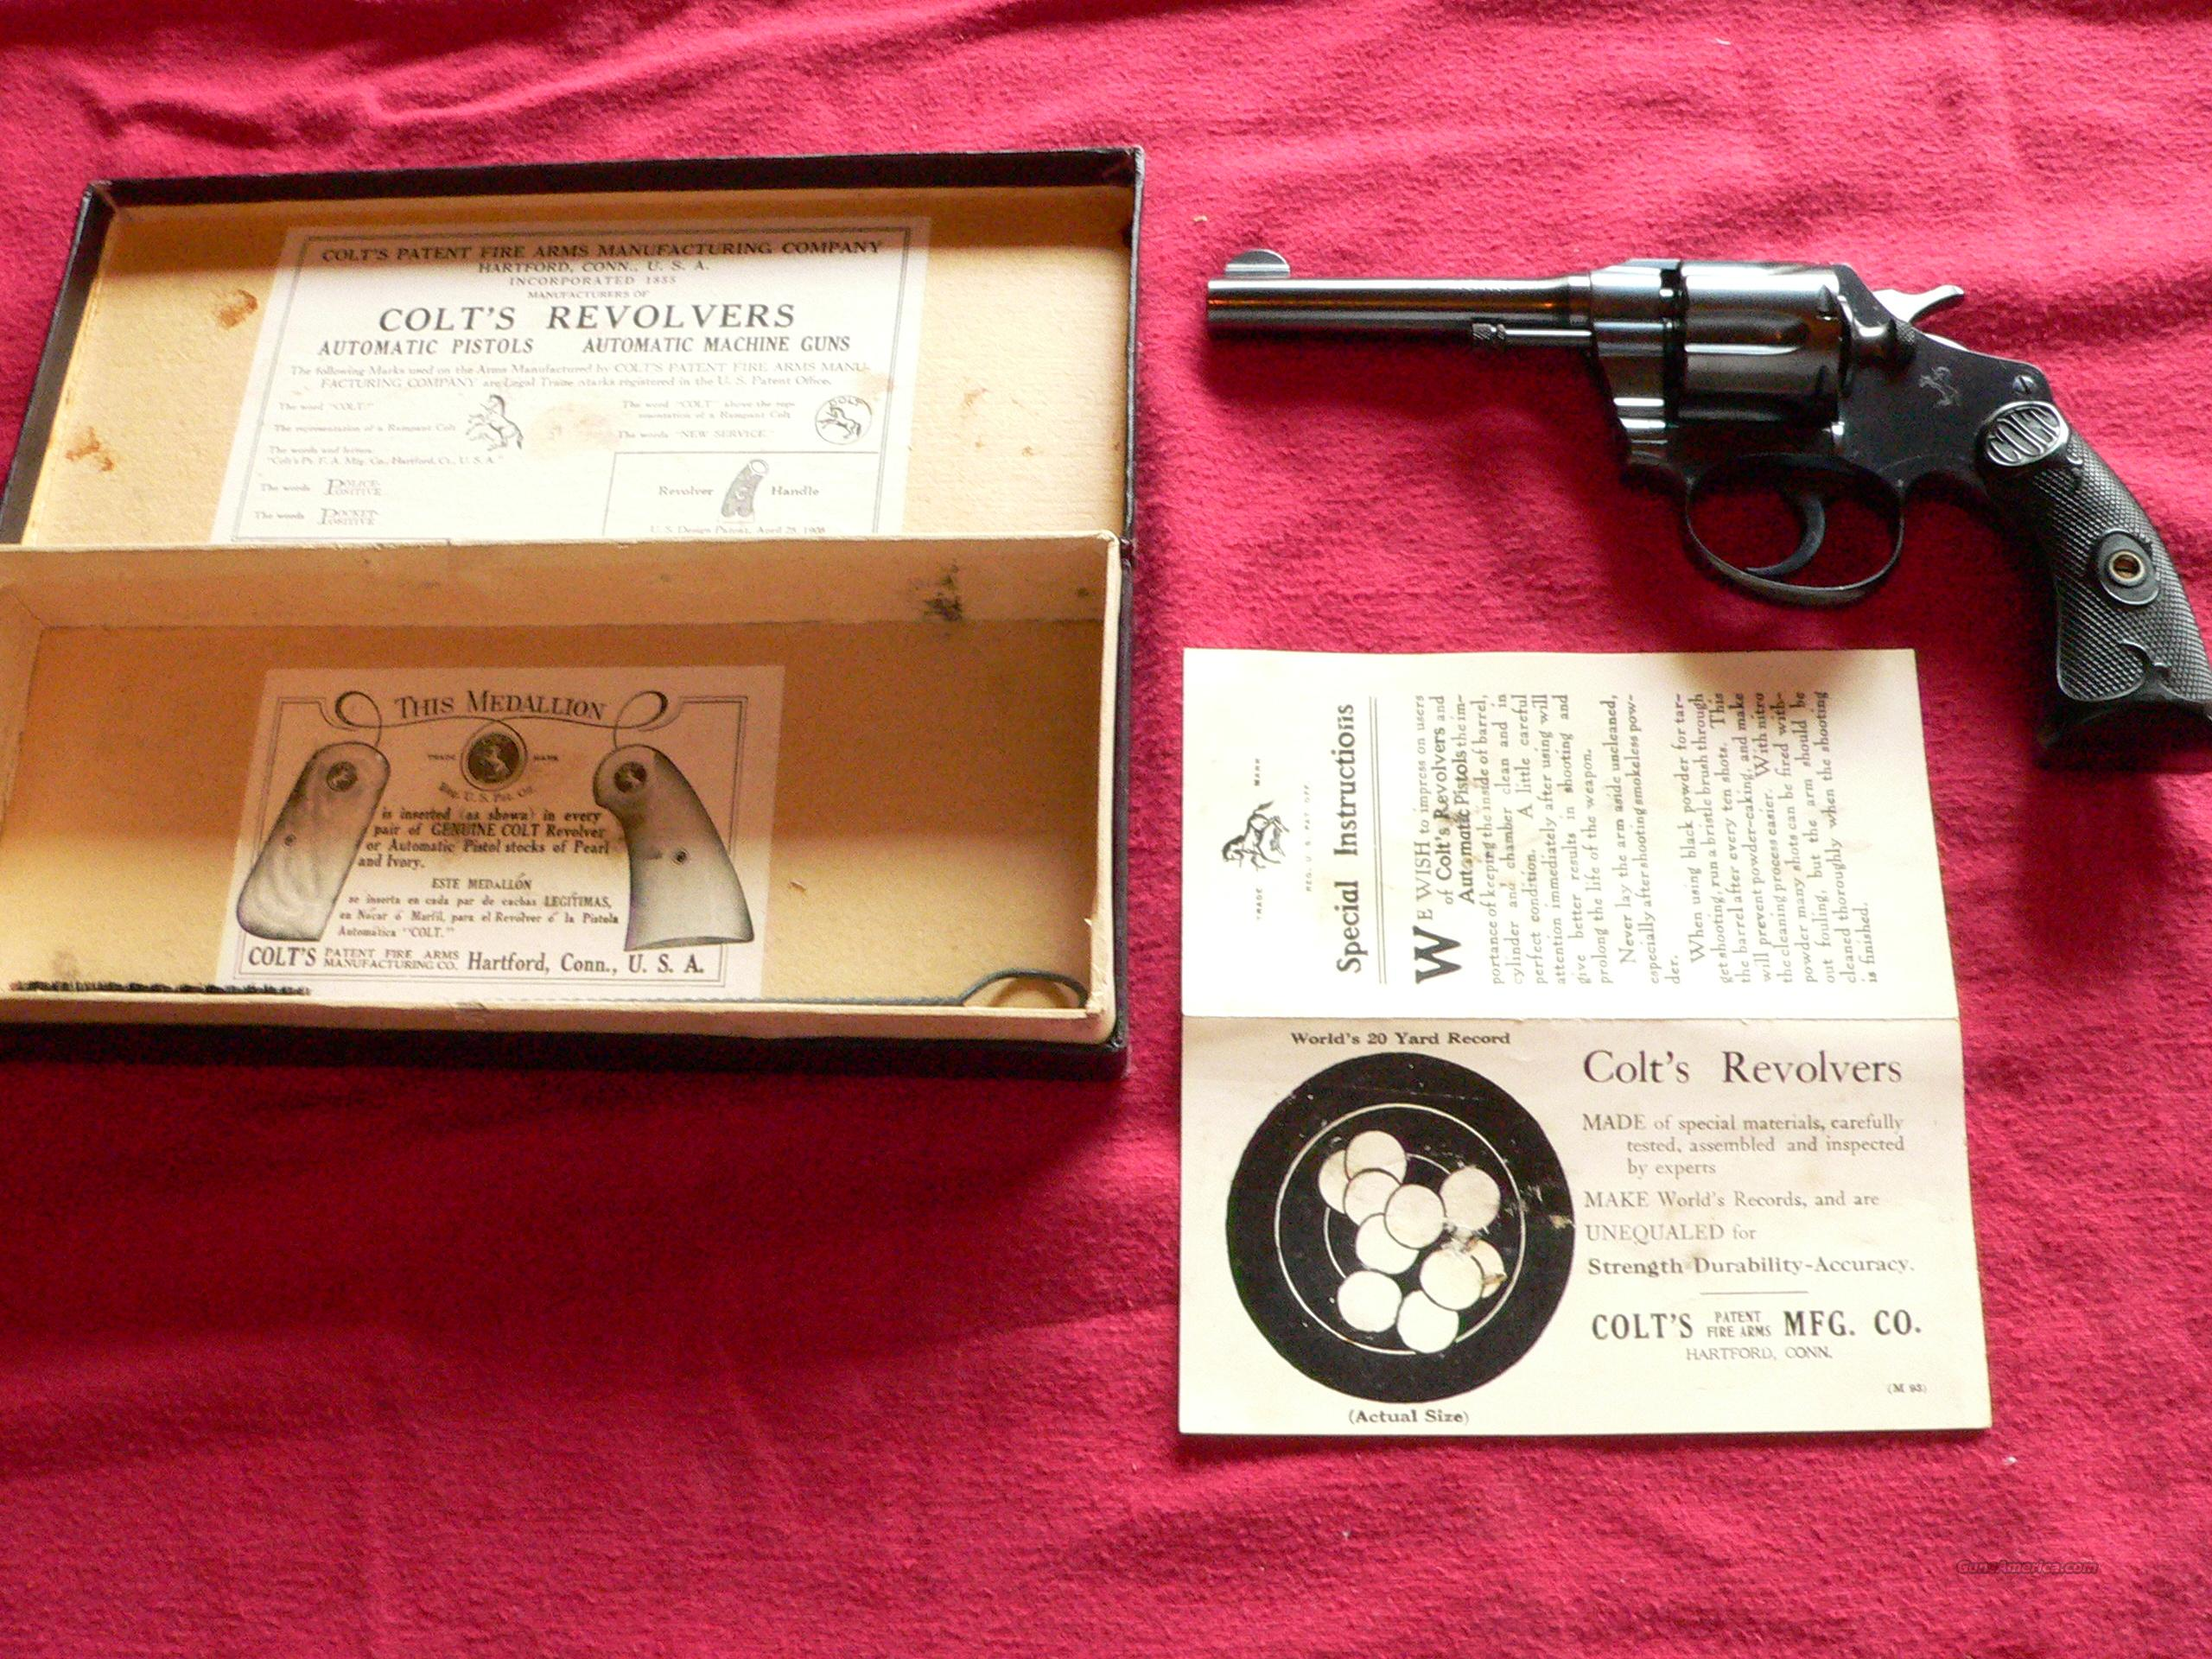 New in Box (NIB) Colt Police Positive Double-Action cal. 38 S&W Revolver manufactured in 1925  Guns > Pistols > Colt Double Action Revolvers- Modern